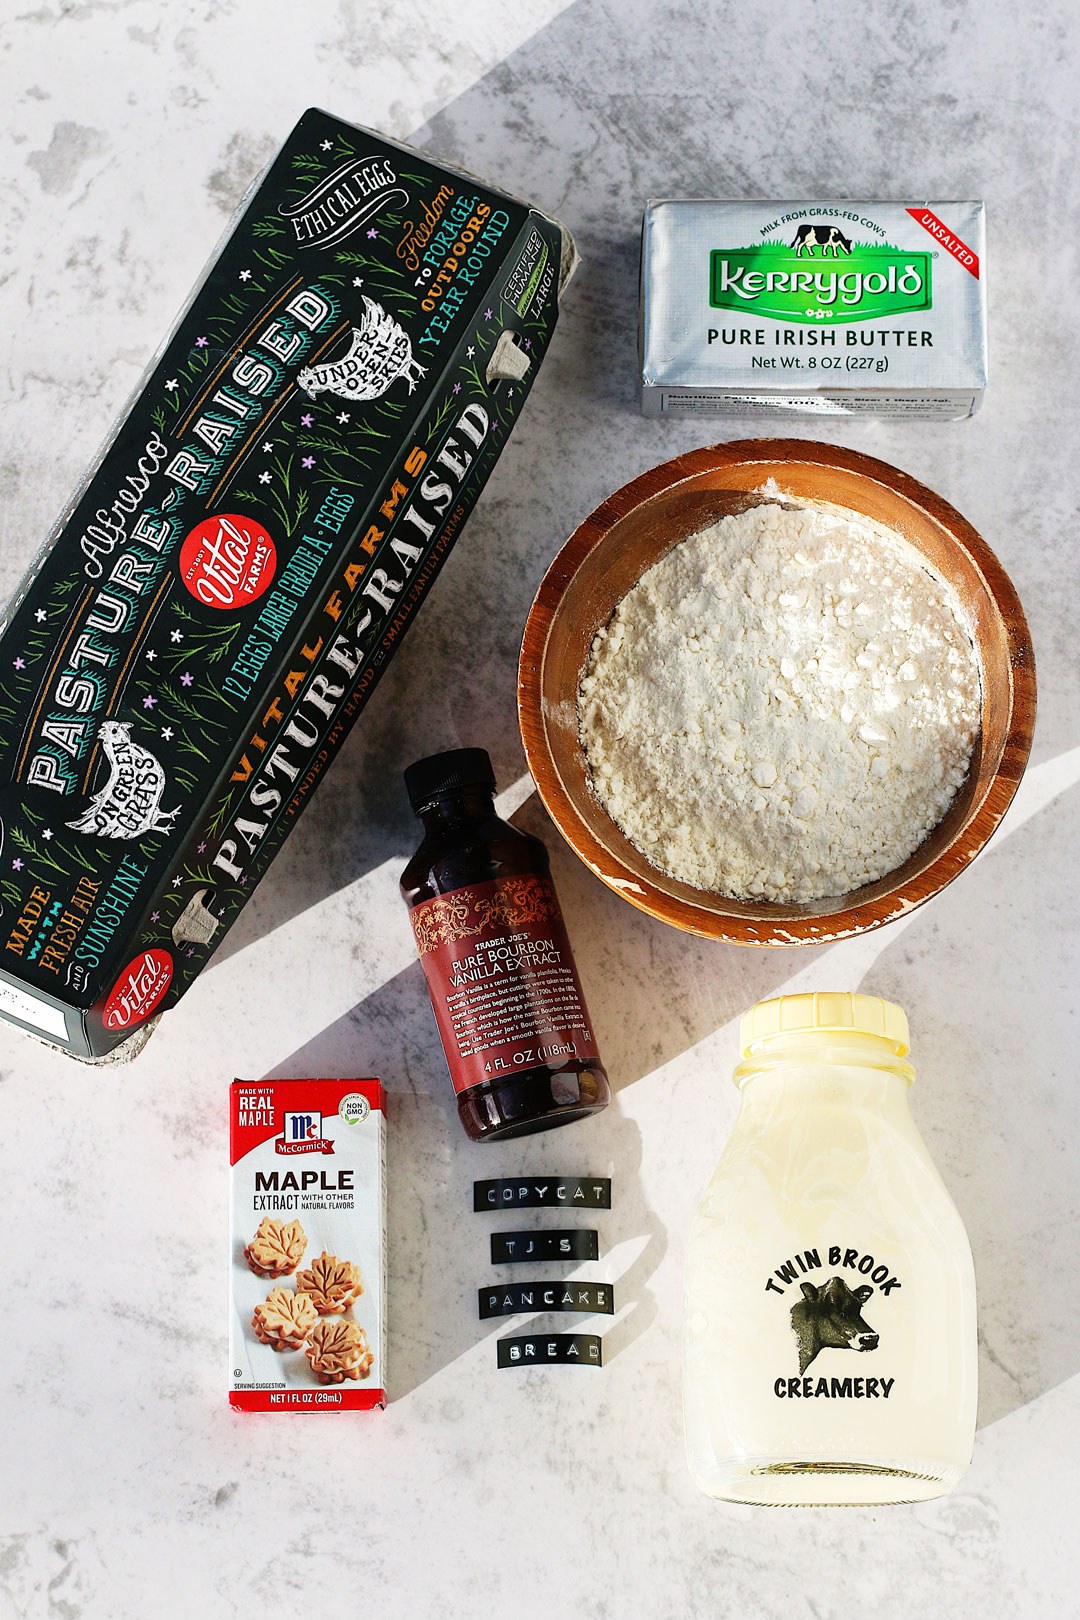 herbakinglab-copycat-trader-joe's-pancake-bread-recipe-prep-ingredients